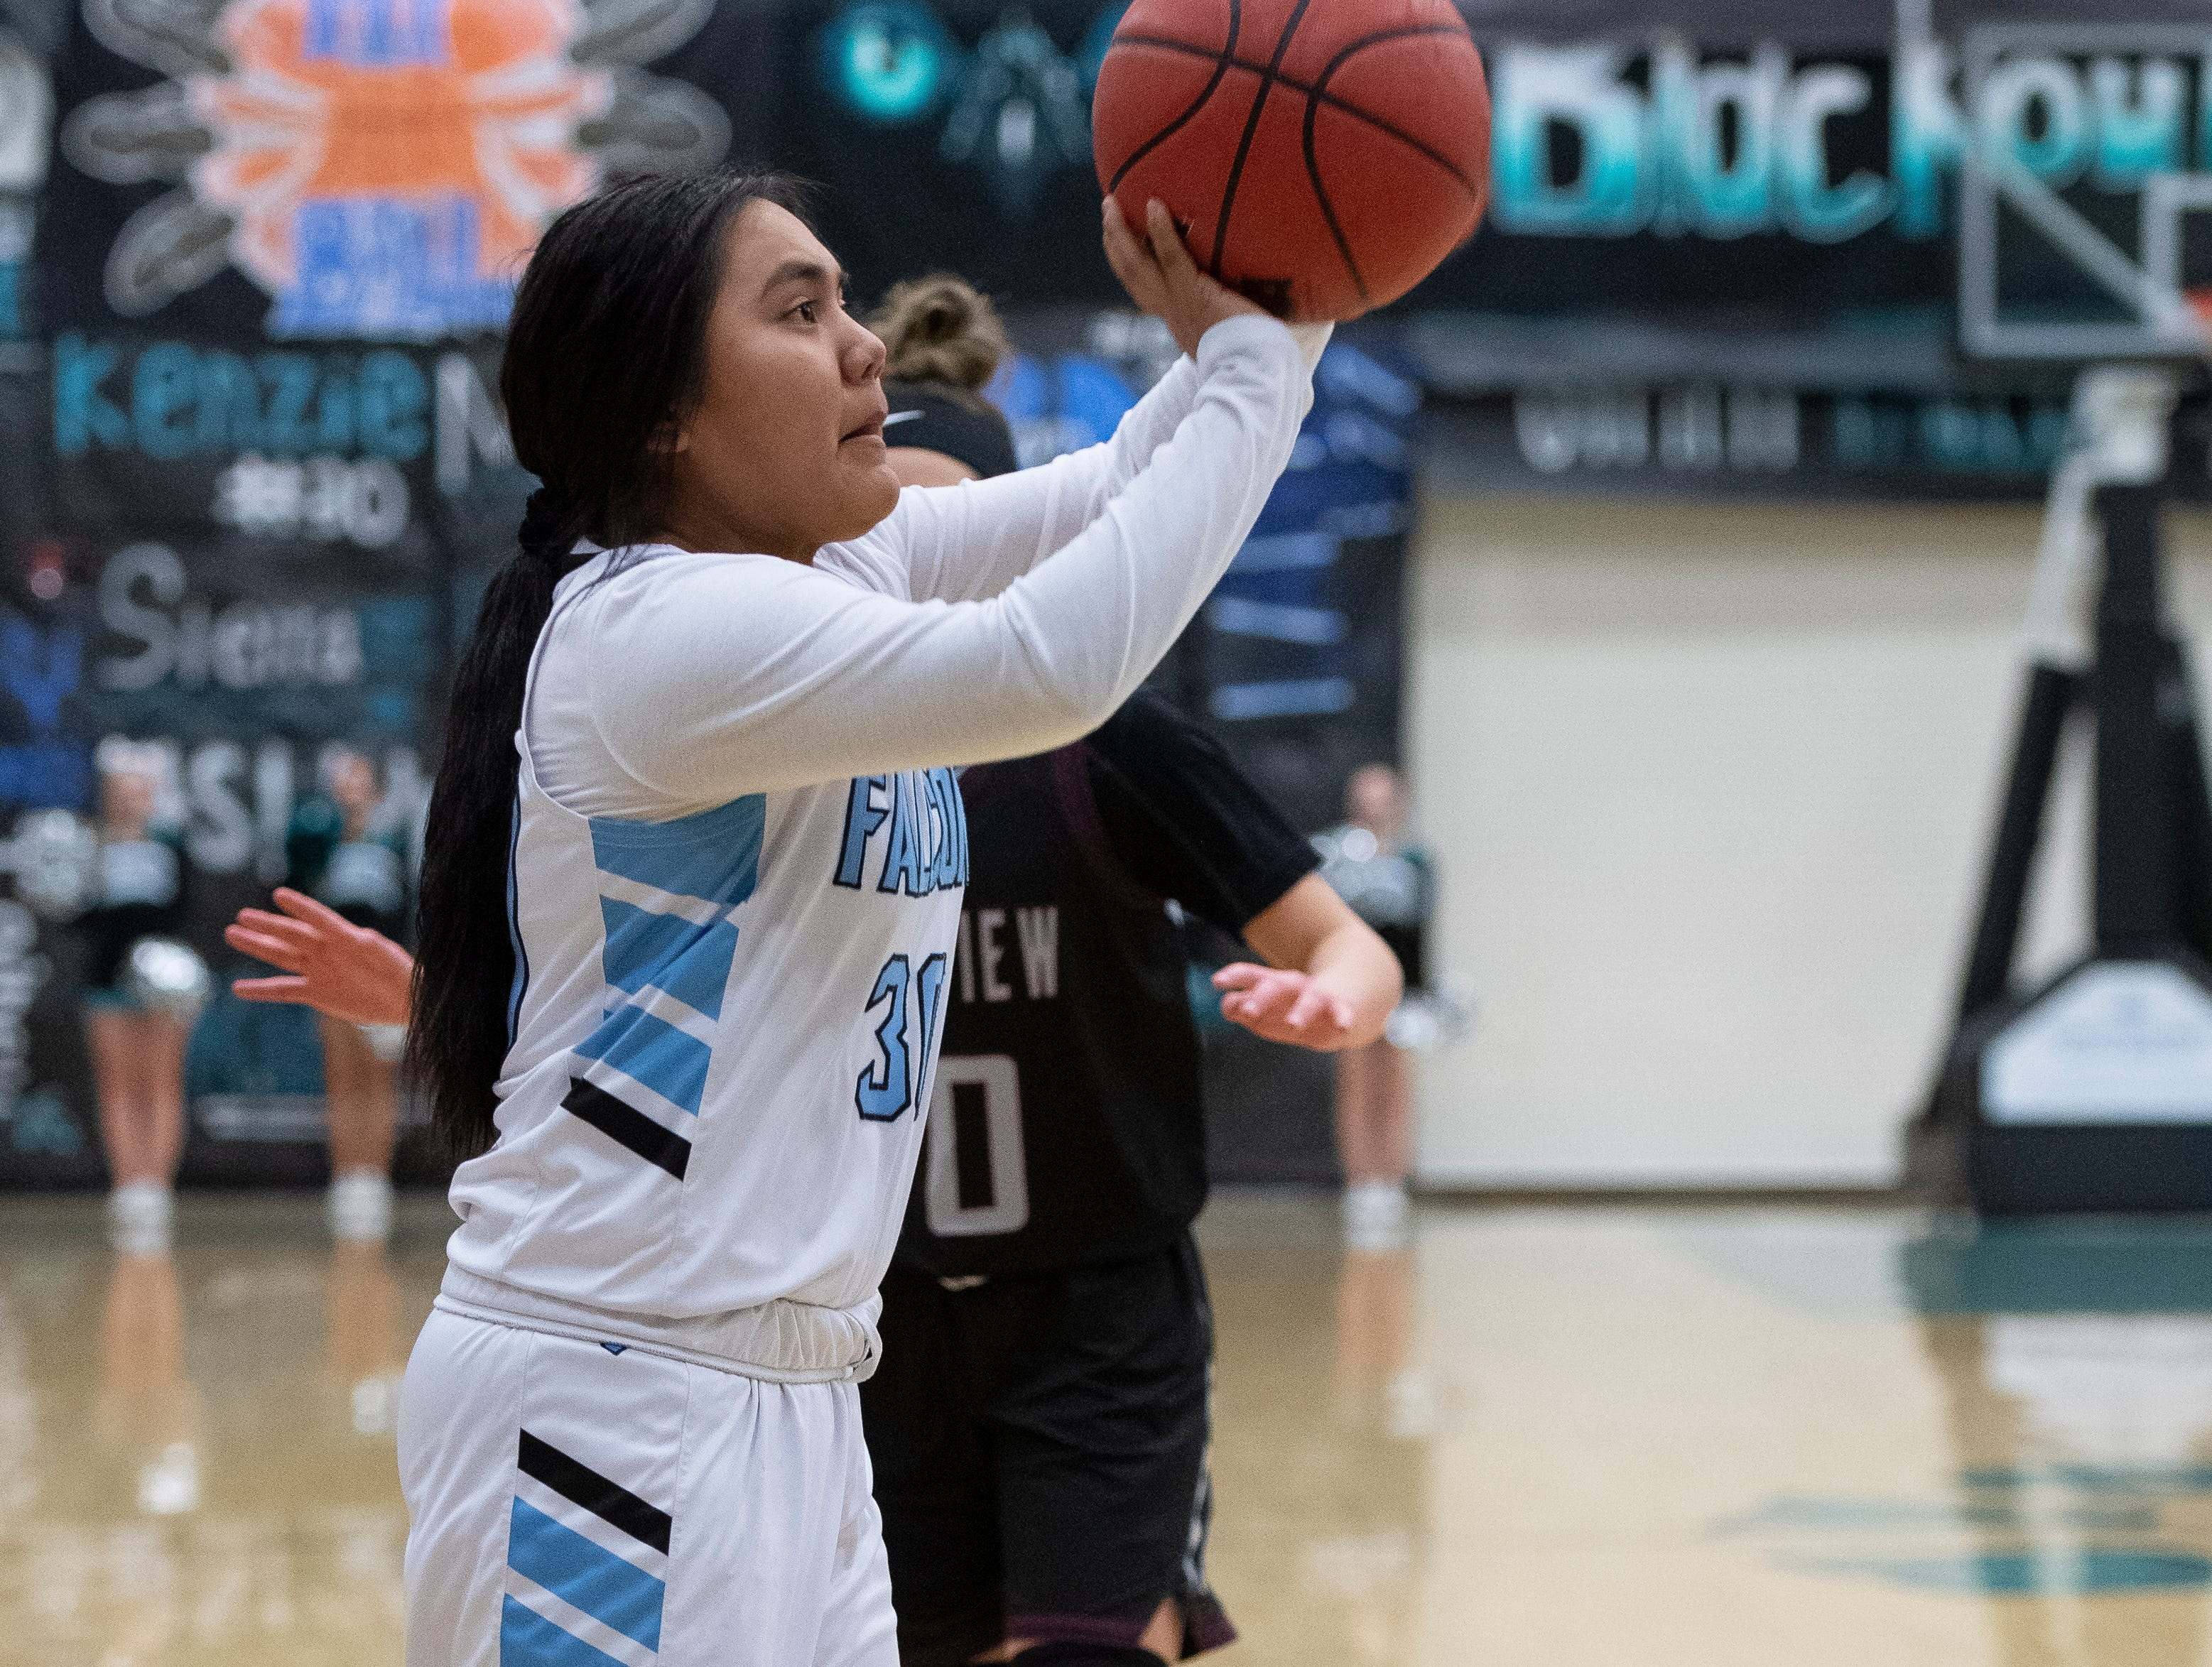 Canyon View High School sophomore Mackenzi Whitehair (30) takes a shot against Pine View at CVHS Tuesday, January 15, 2019. The CVHS Falcons won, 48-46.